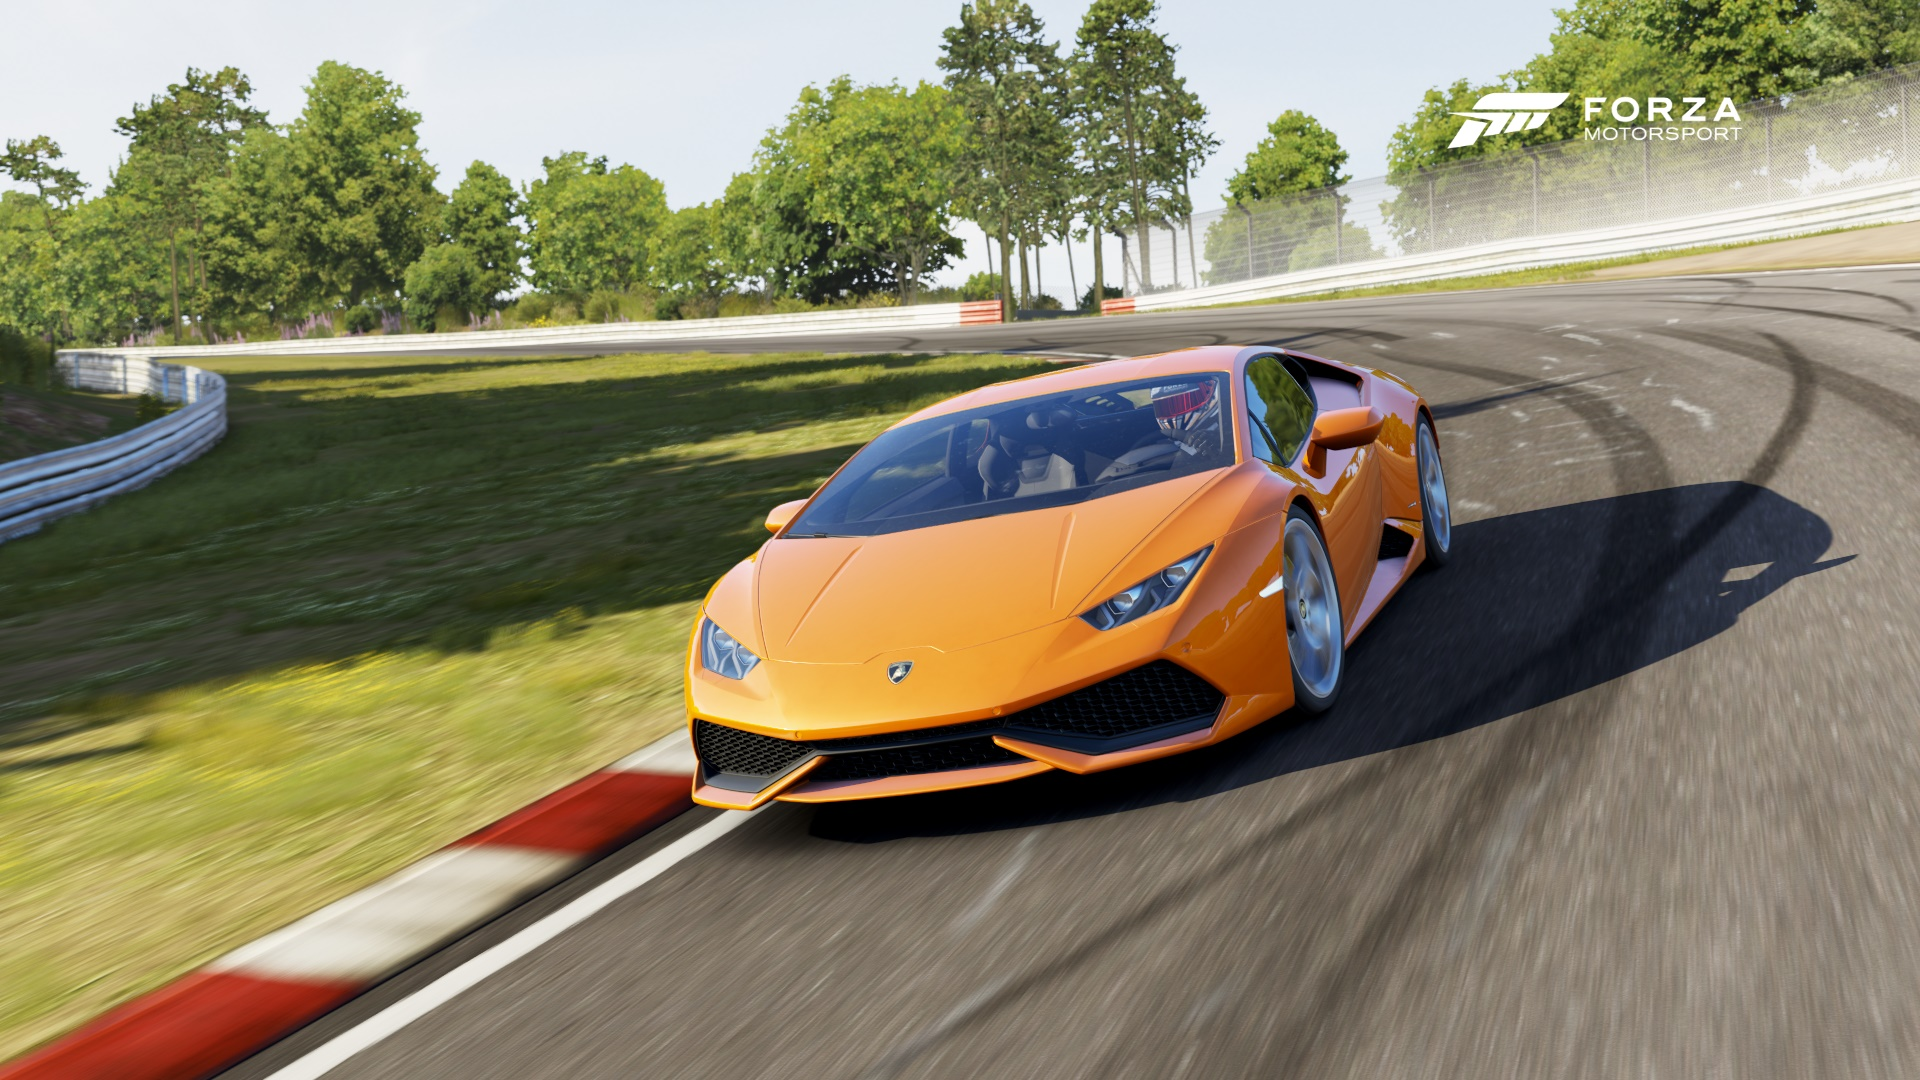 Well after playing forza motorpost 6 for 3 days i can say thay is one of the best car games for console but there s something missing that i can t figure